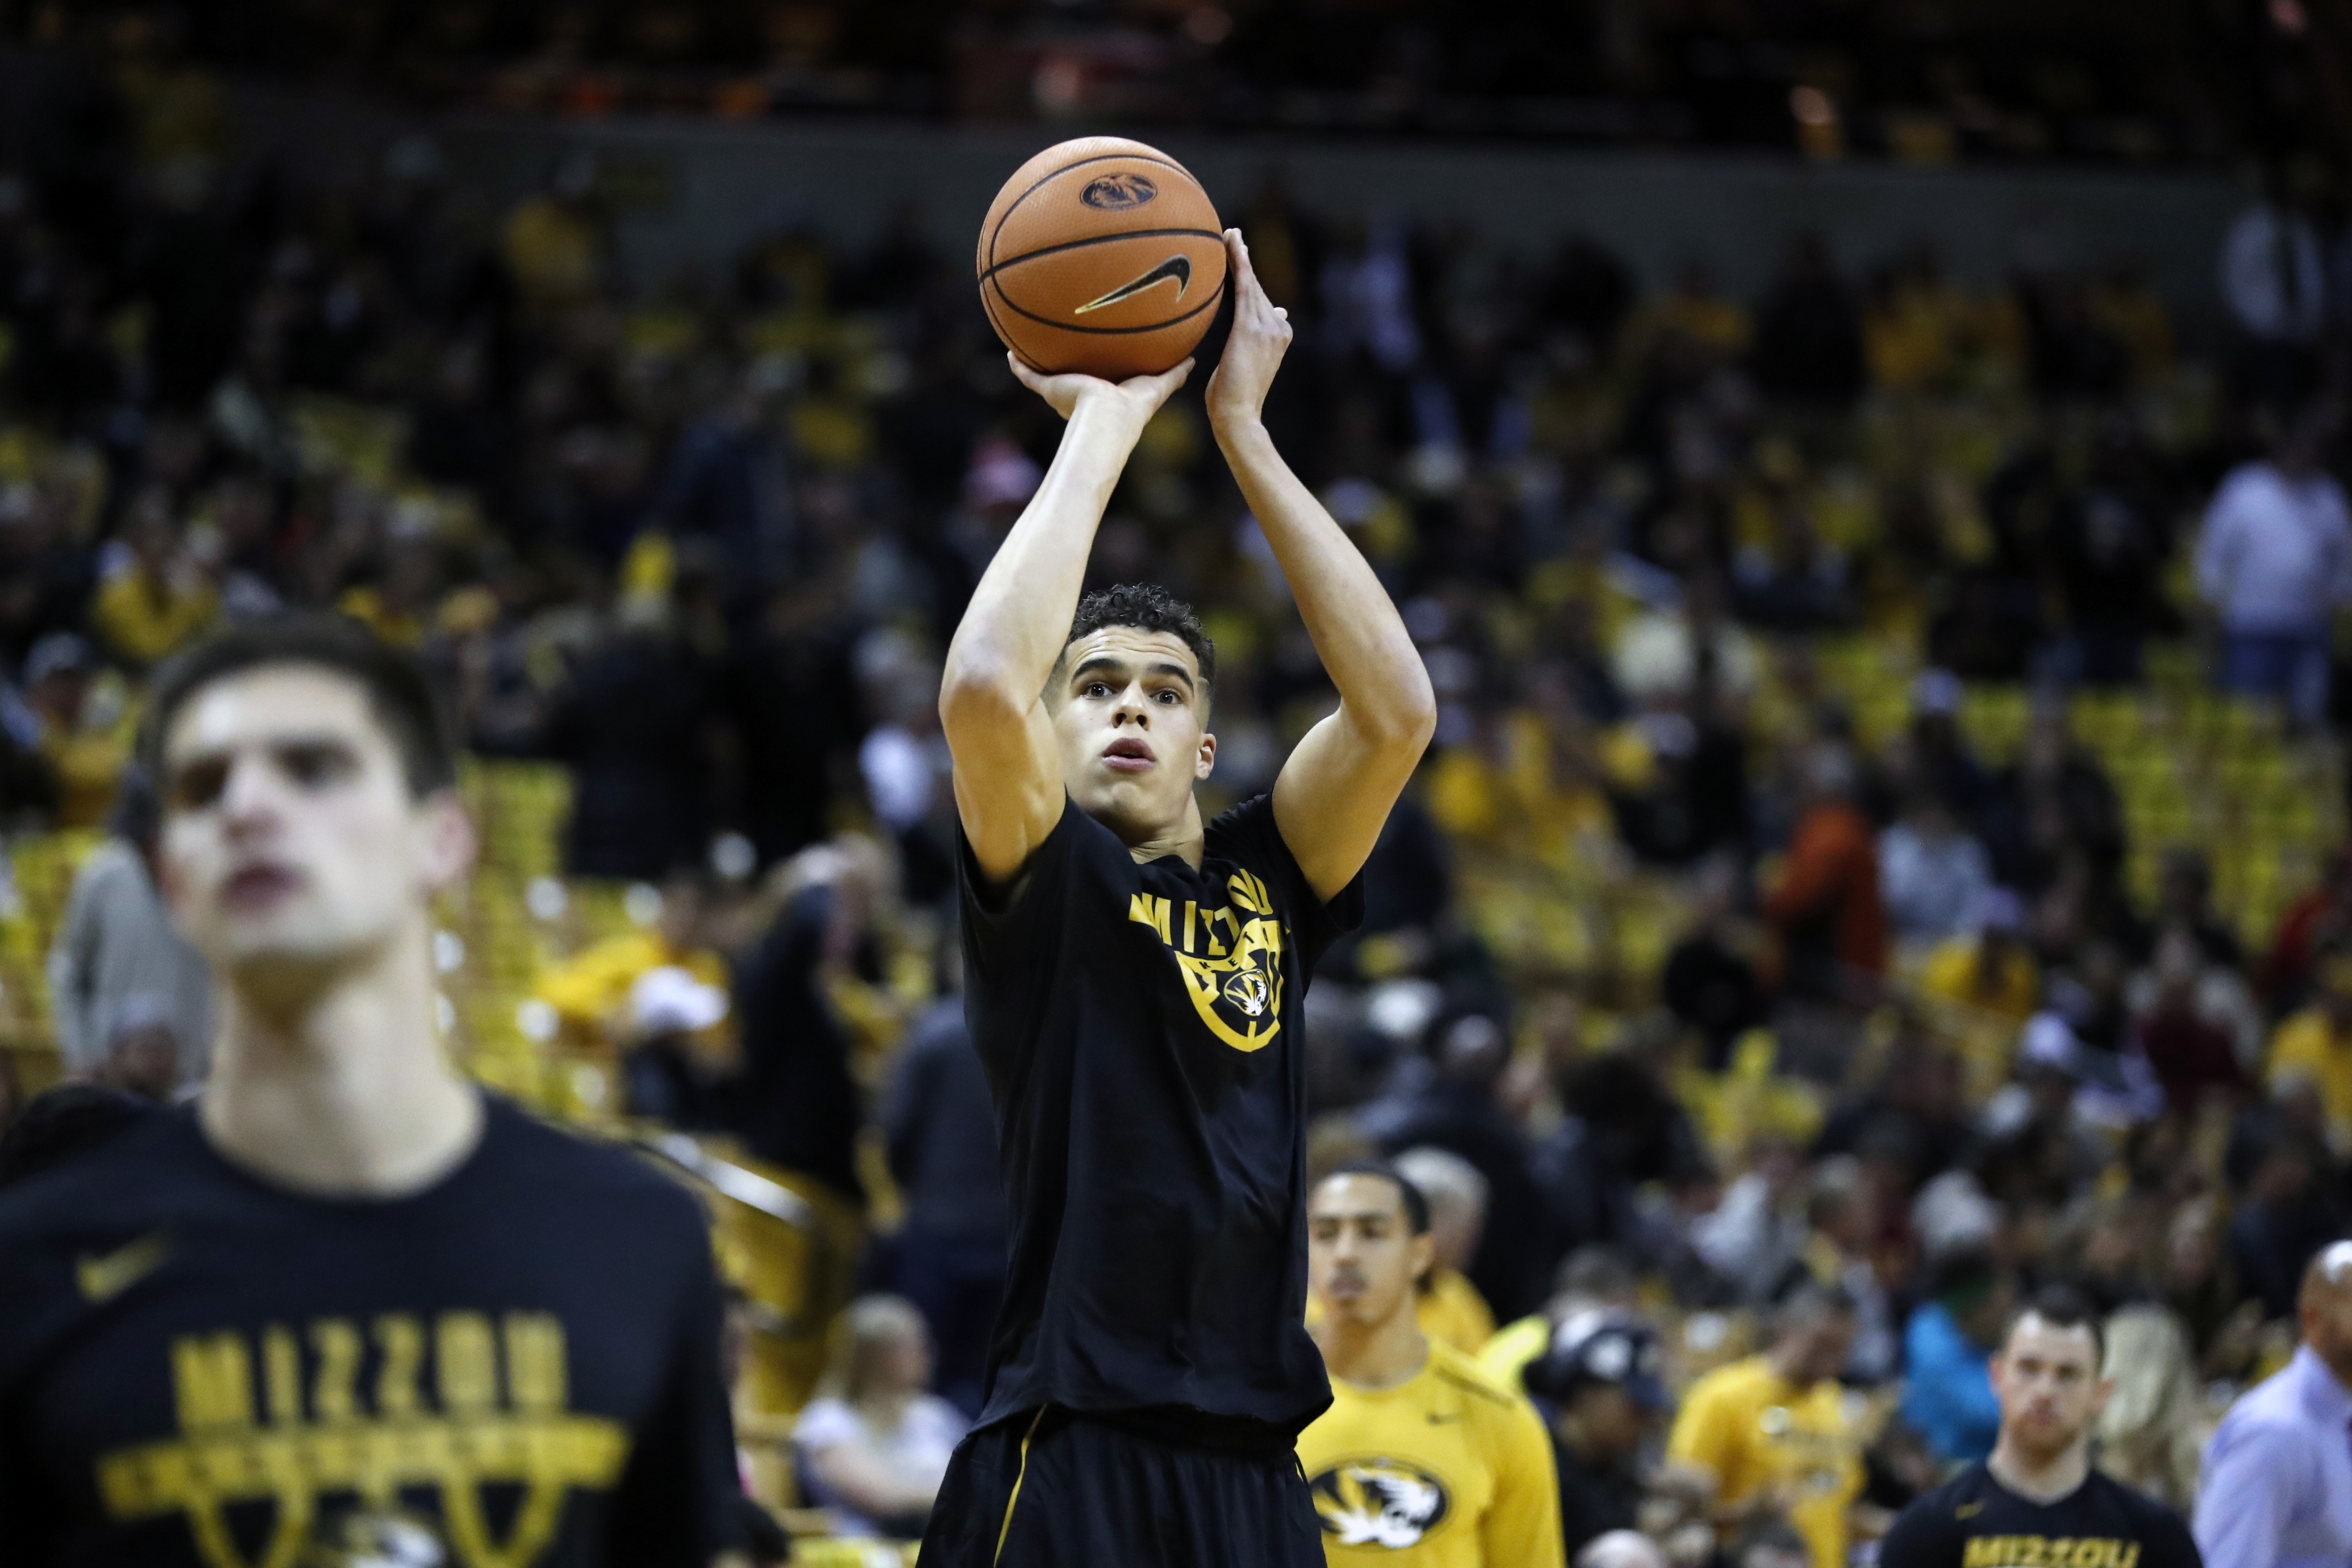 NBA draft profile: Mavs may have safer options, but there's no denying Michael Porter Jr.'s talent